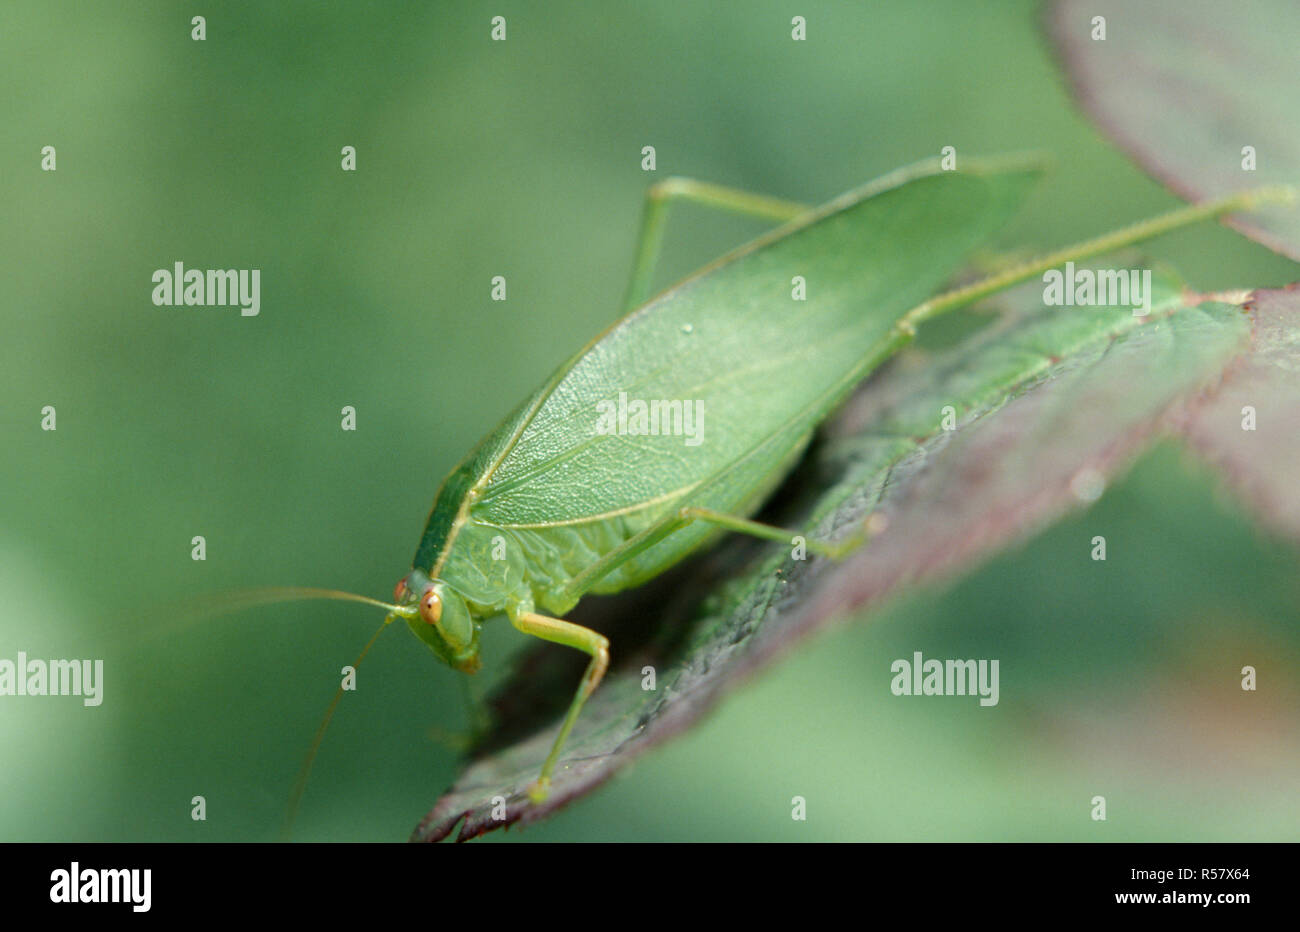 Insects in the family Tettigoniidae are commonly called katydids, bush crickets or long-horned grasshoppers. New South Wales, Australia - Stock Image